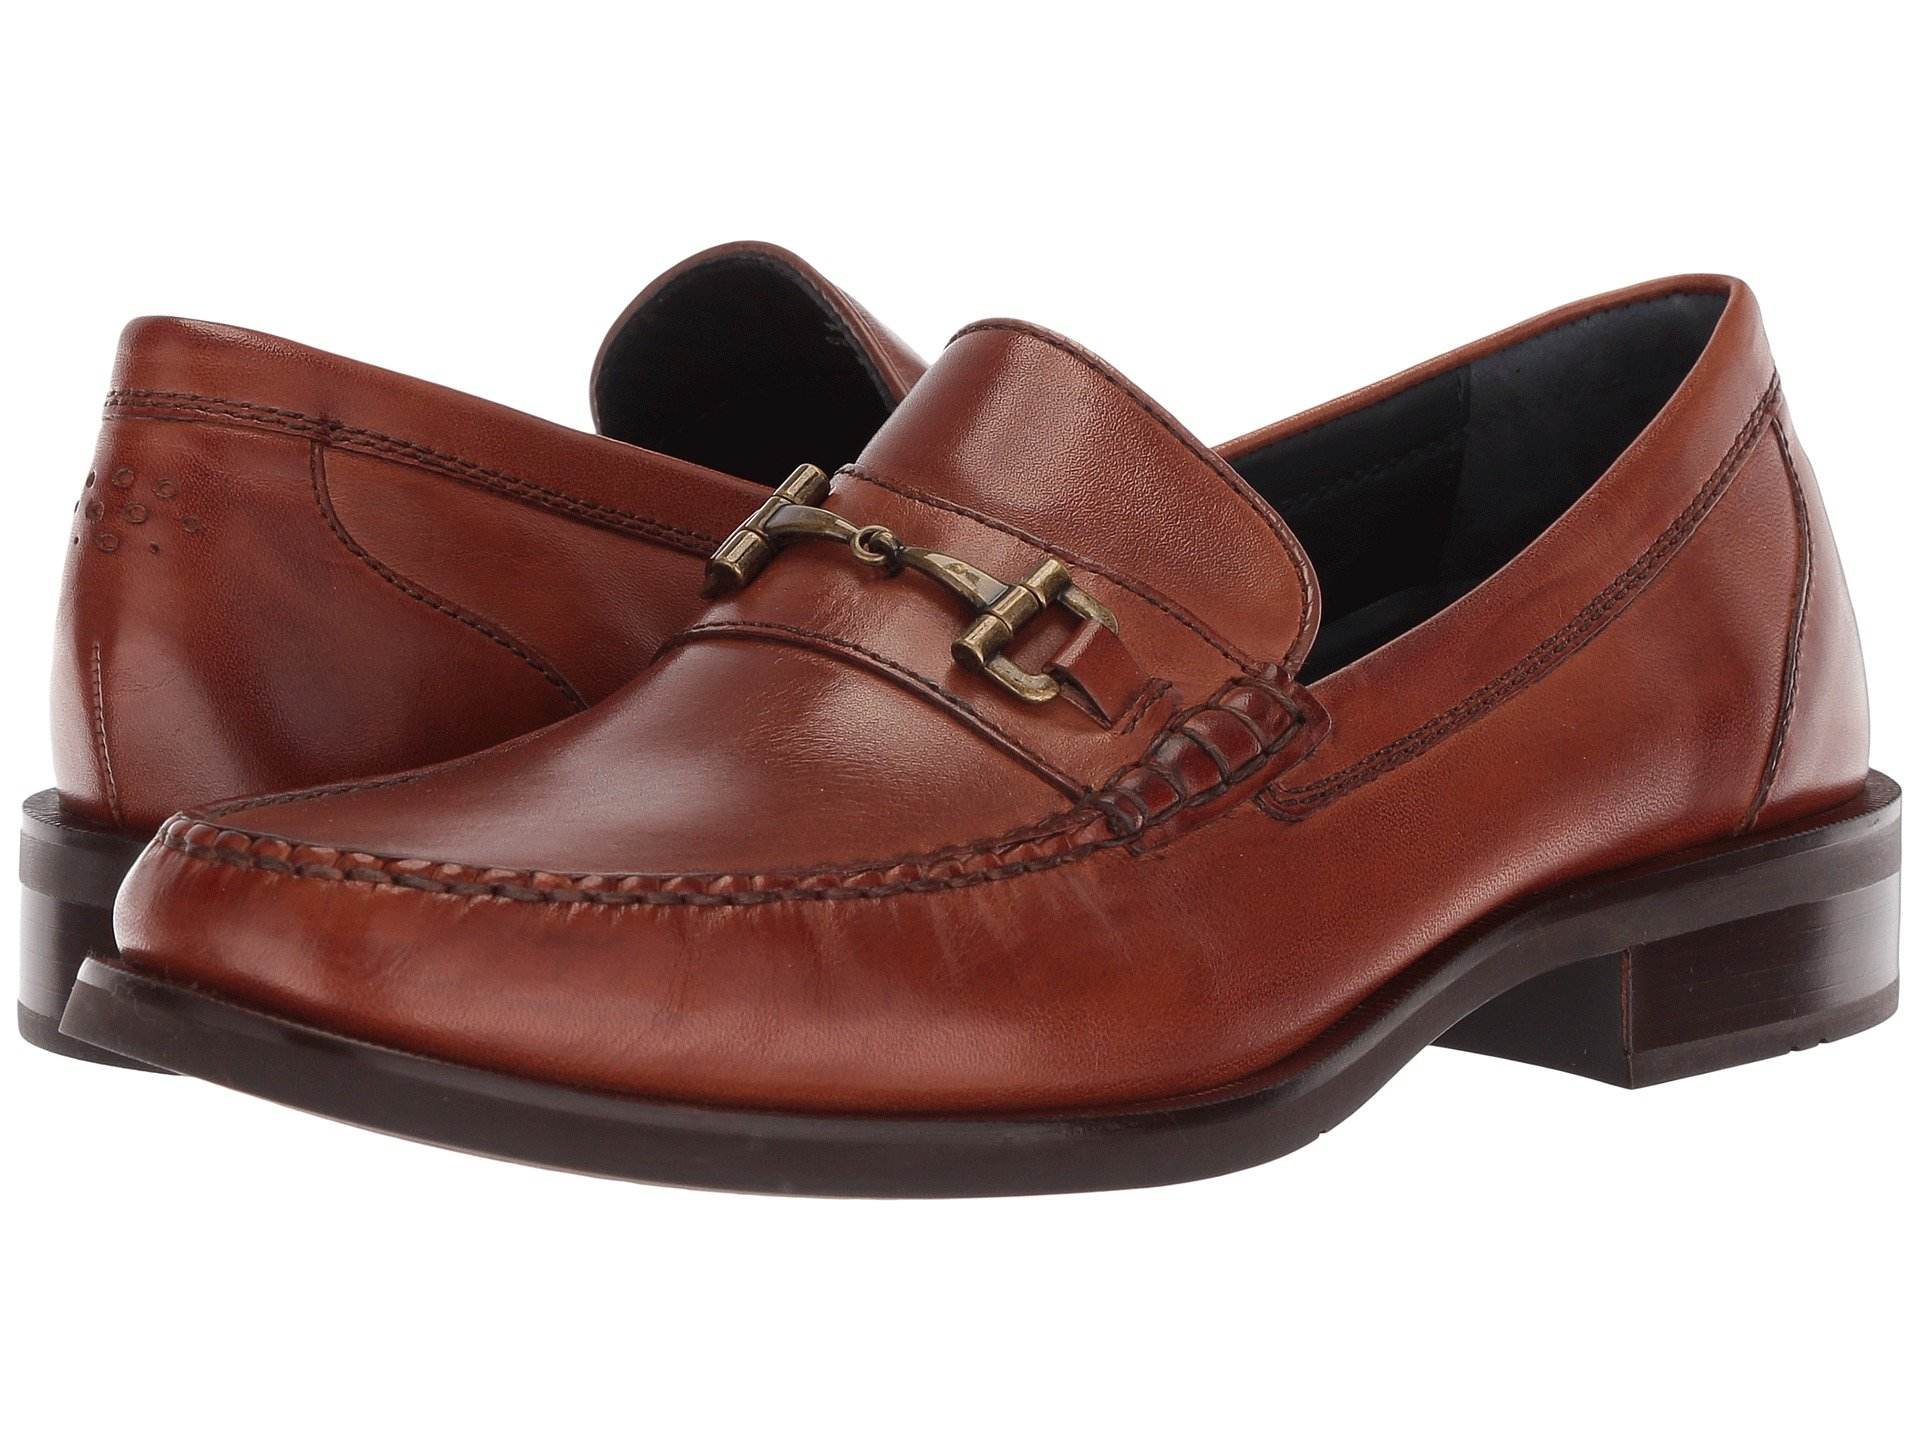 50d2ac02075 Cole Haan Pinch Sanford Bit Loafer